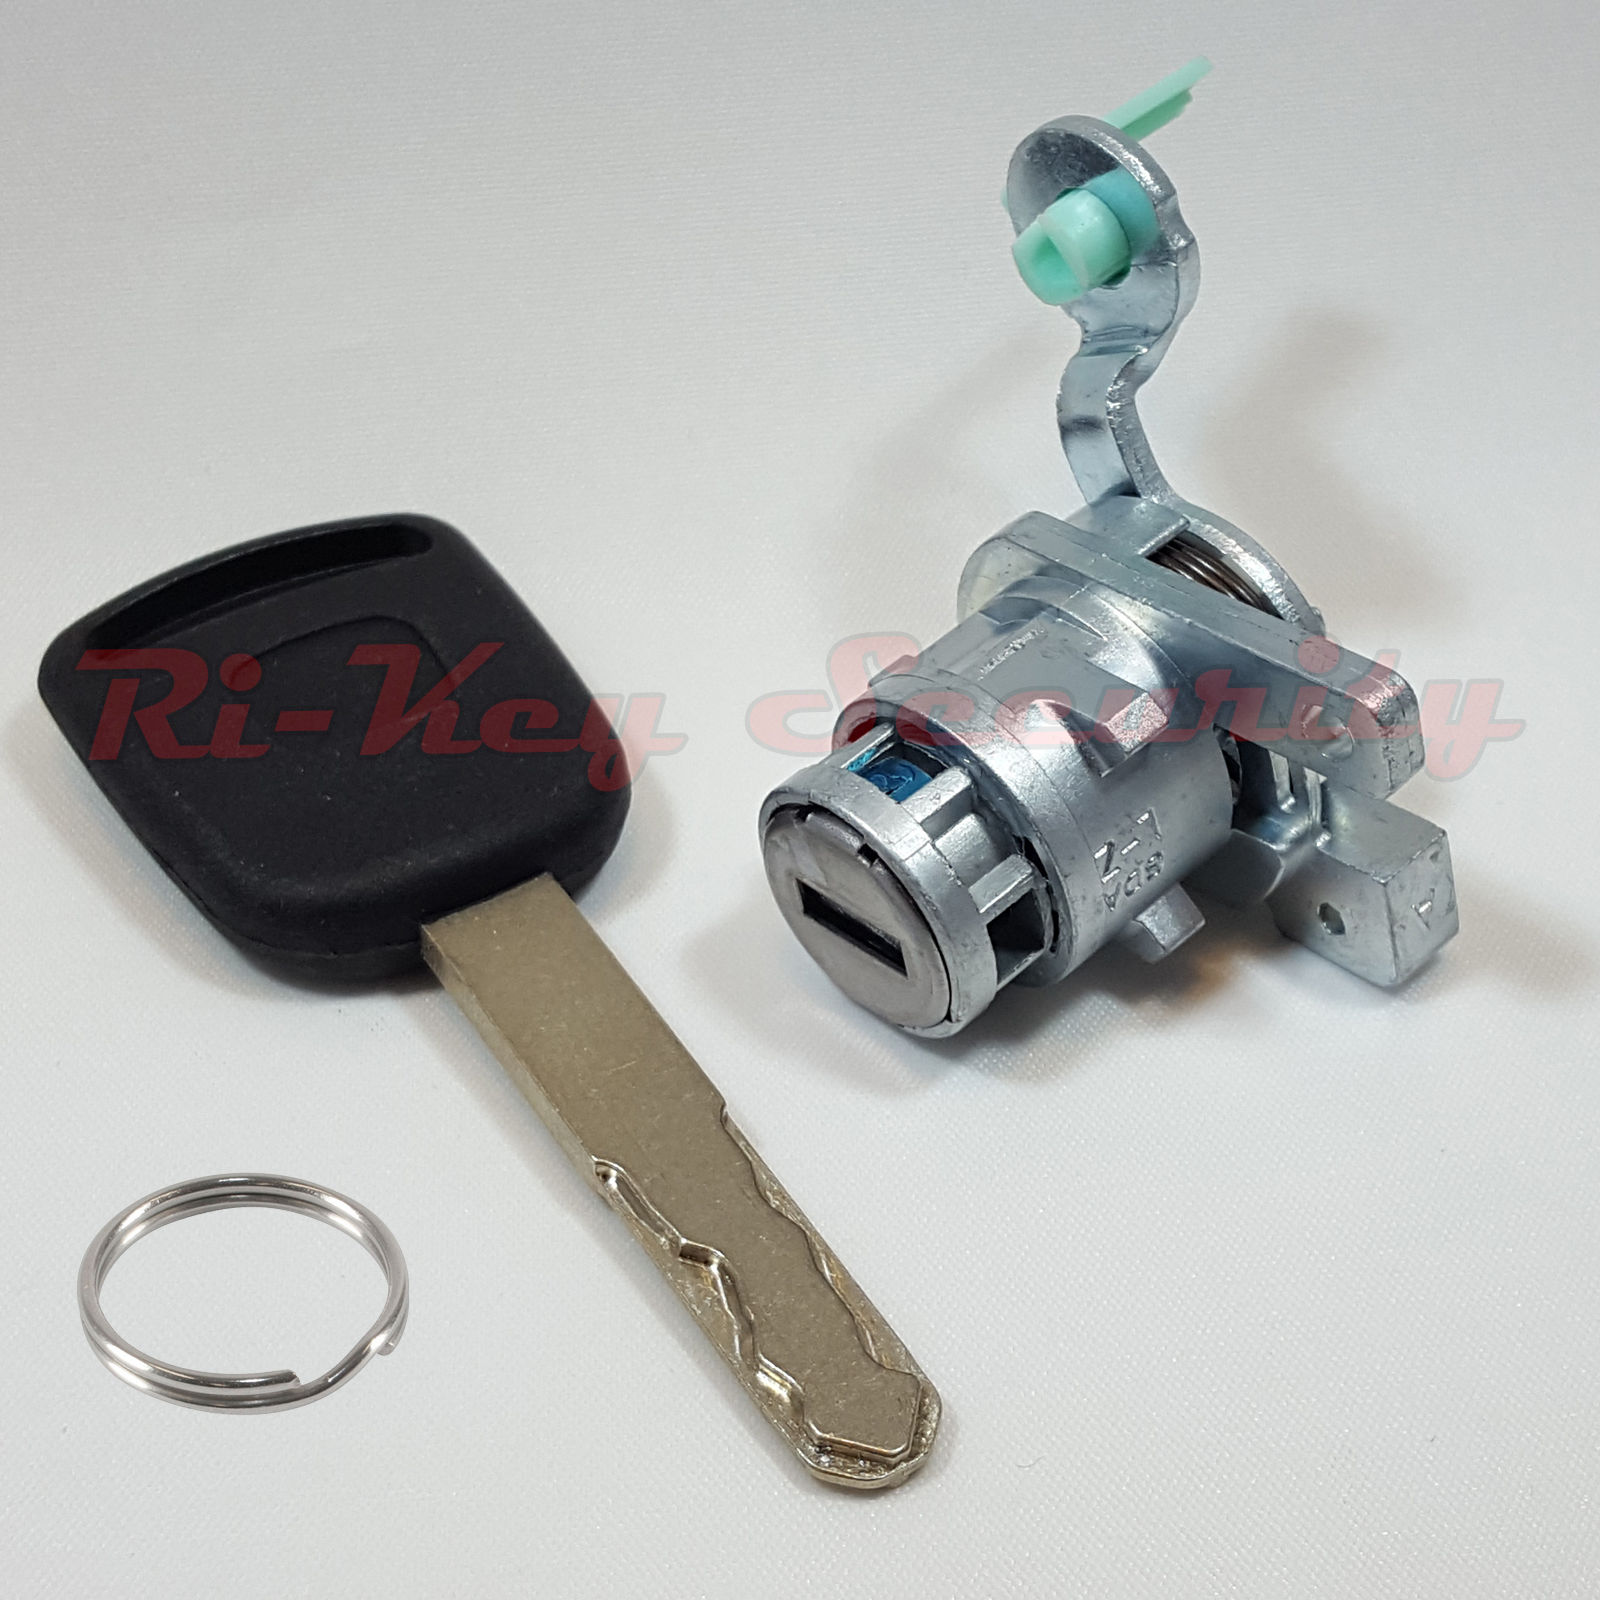 HO-DL-111 Key | Online Locksmith Store